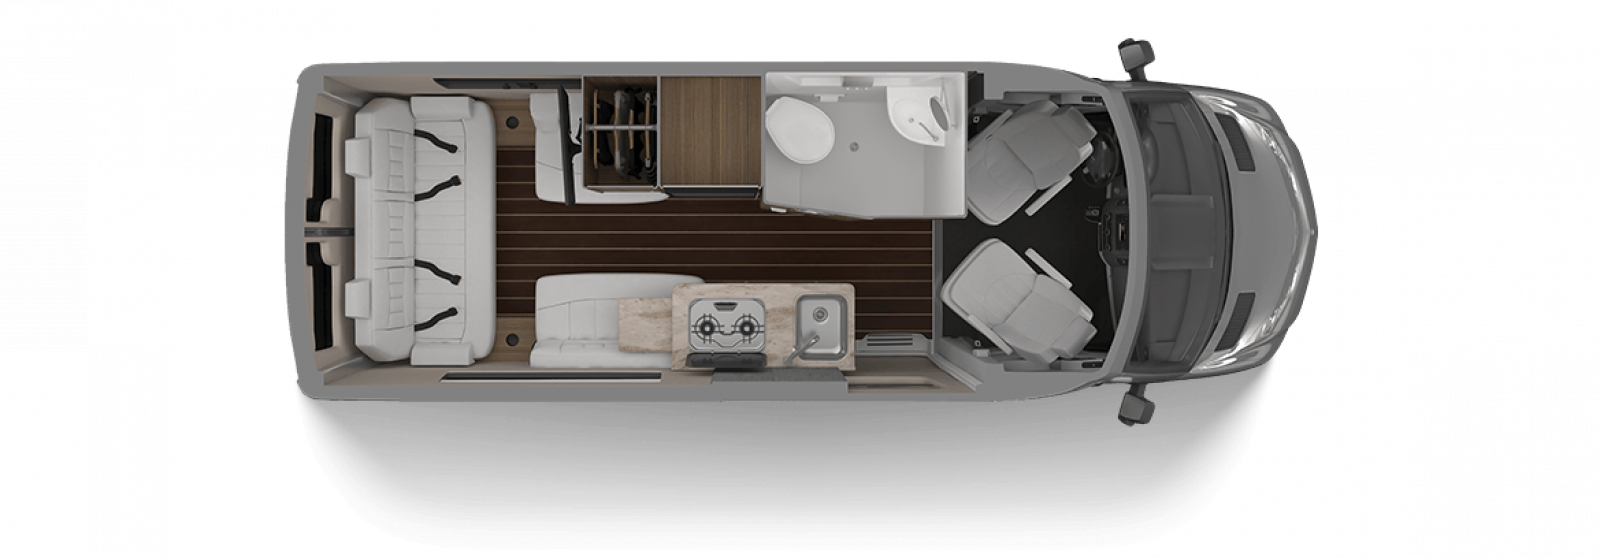 Interstate Nineteen Touring Coaches Airstream Dodge 7 Way Trailer Wiring Color See What Feet Includes